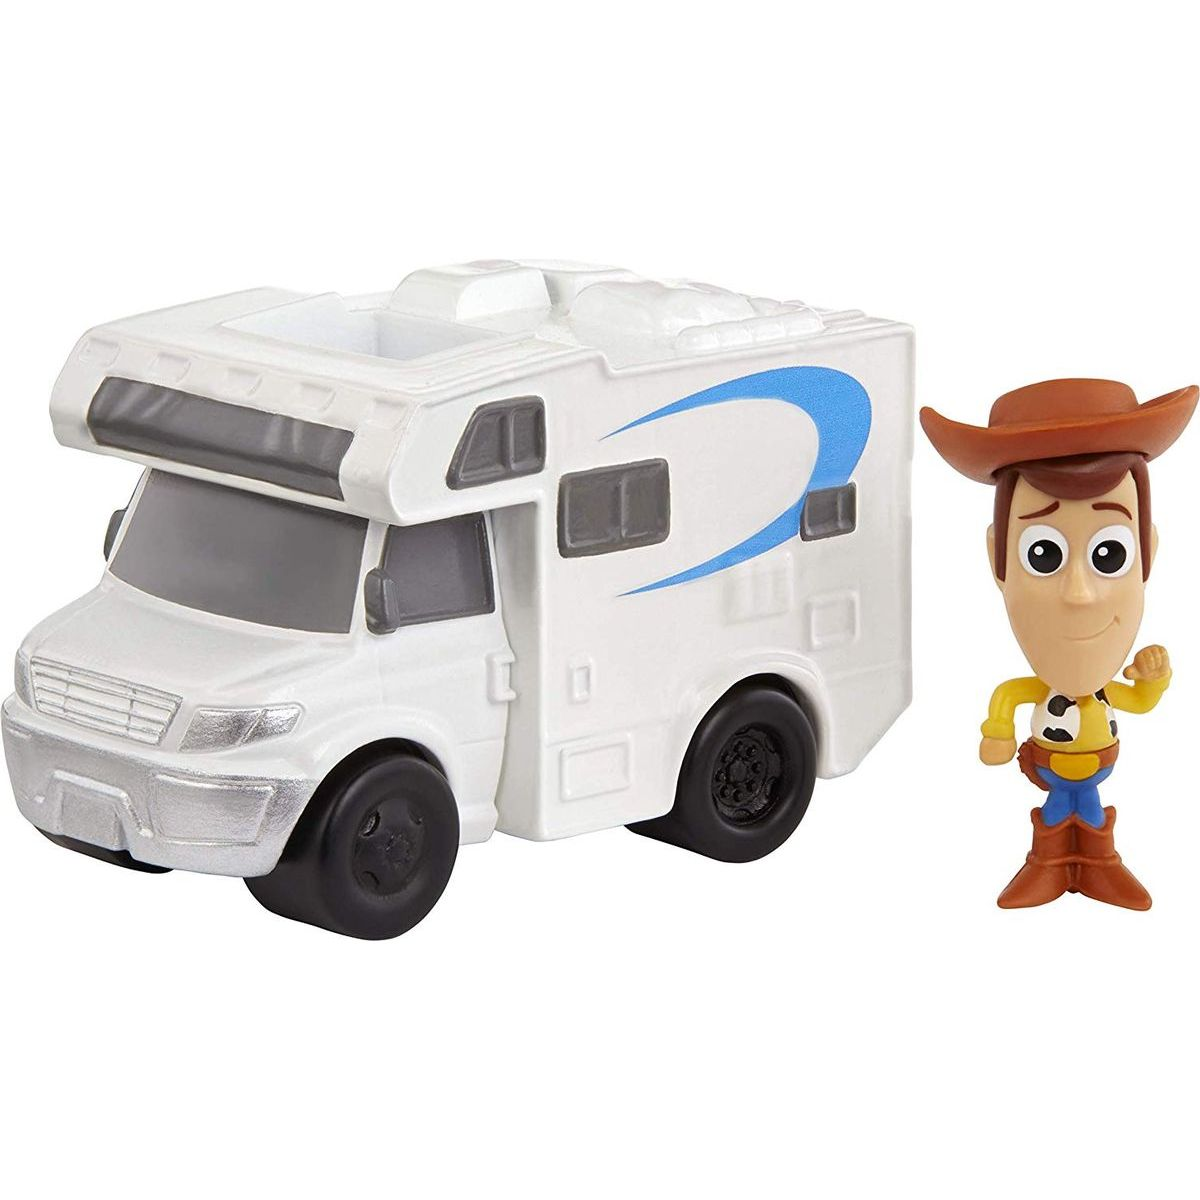 Mattel Toy story 4 minifigurka s vozidlem Woody a RV